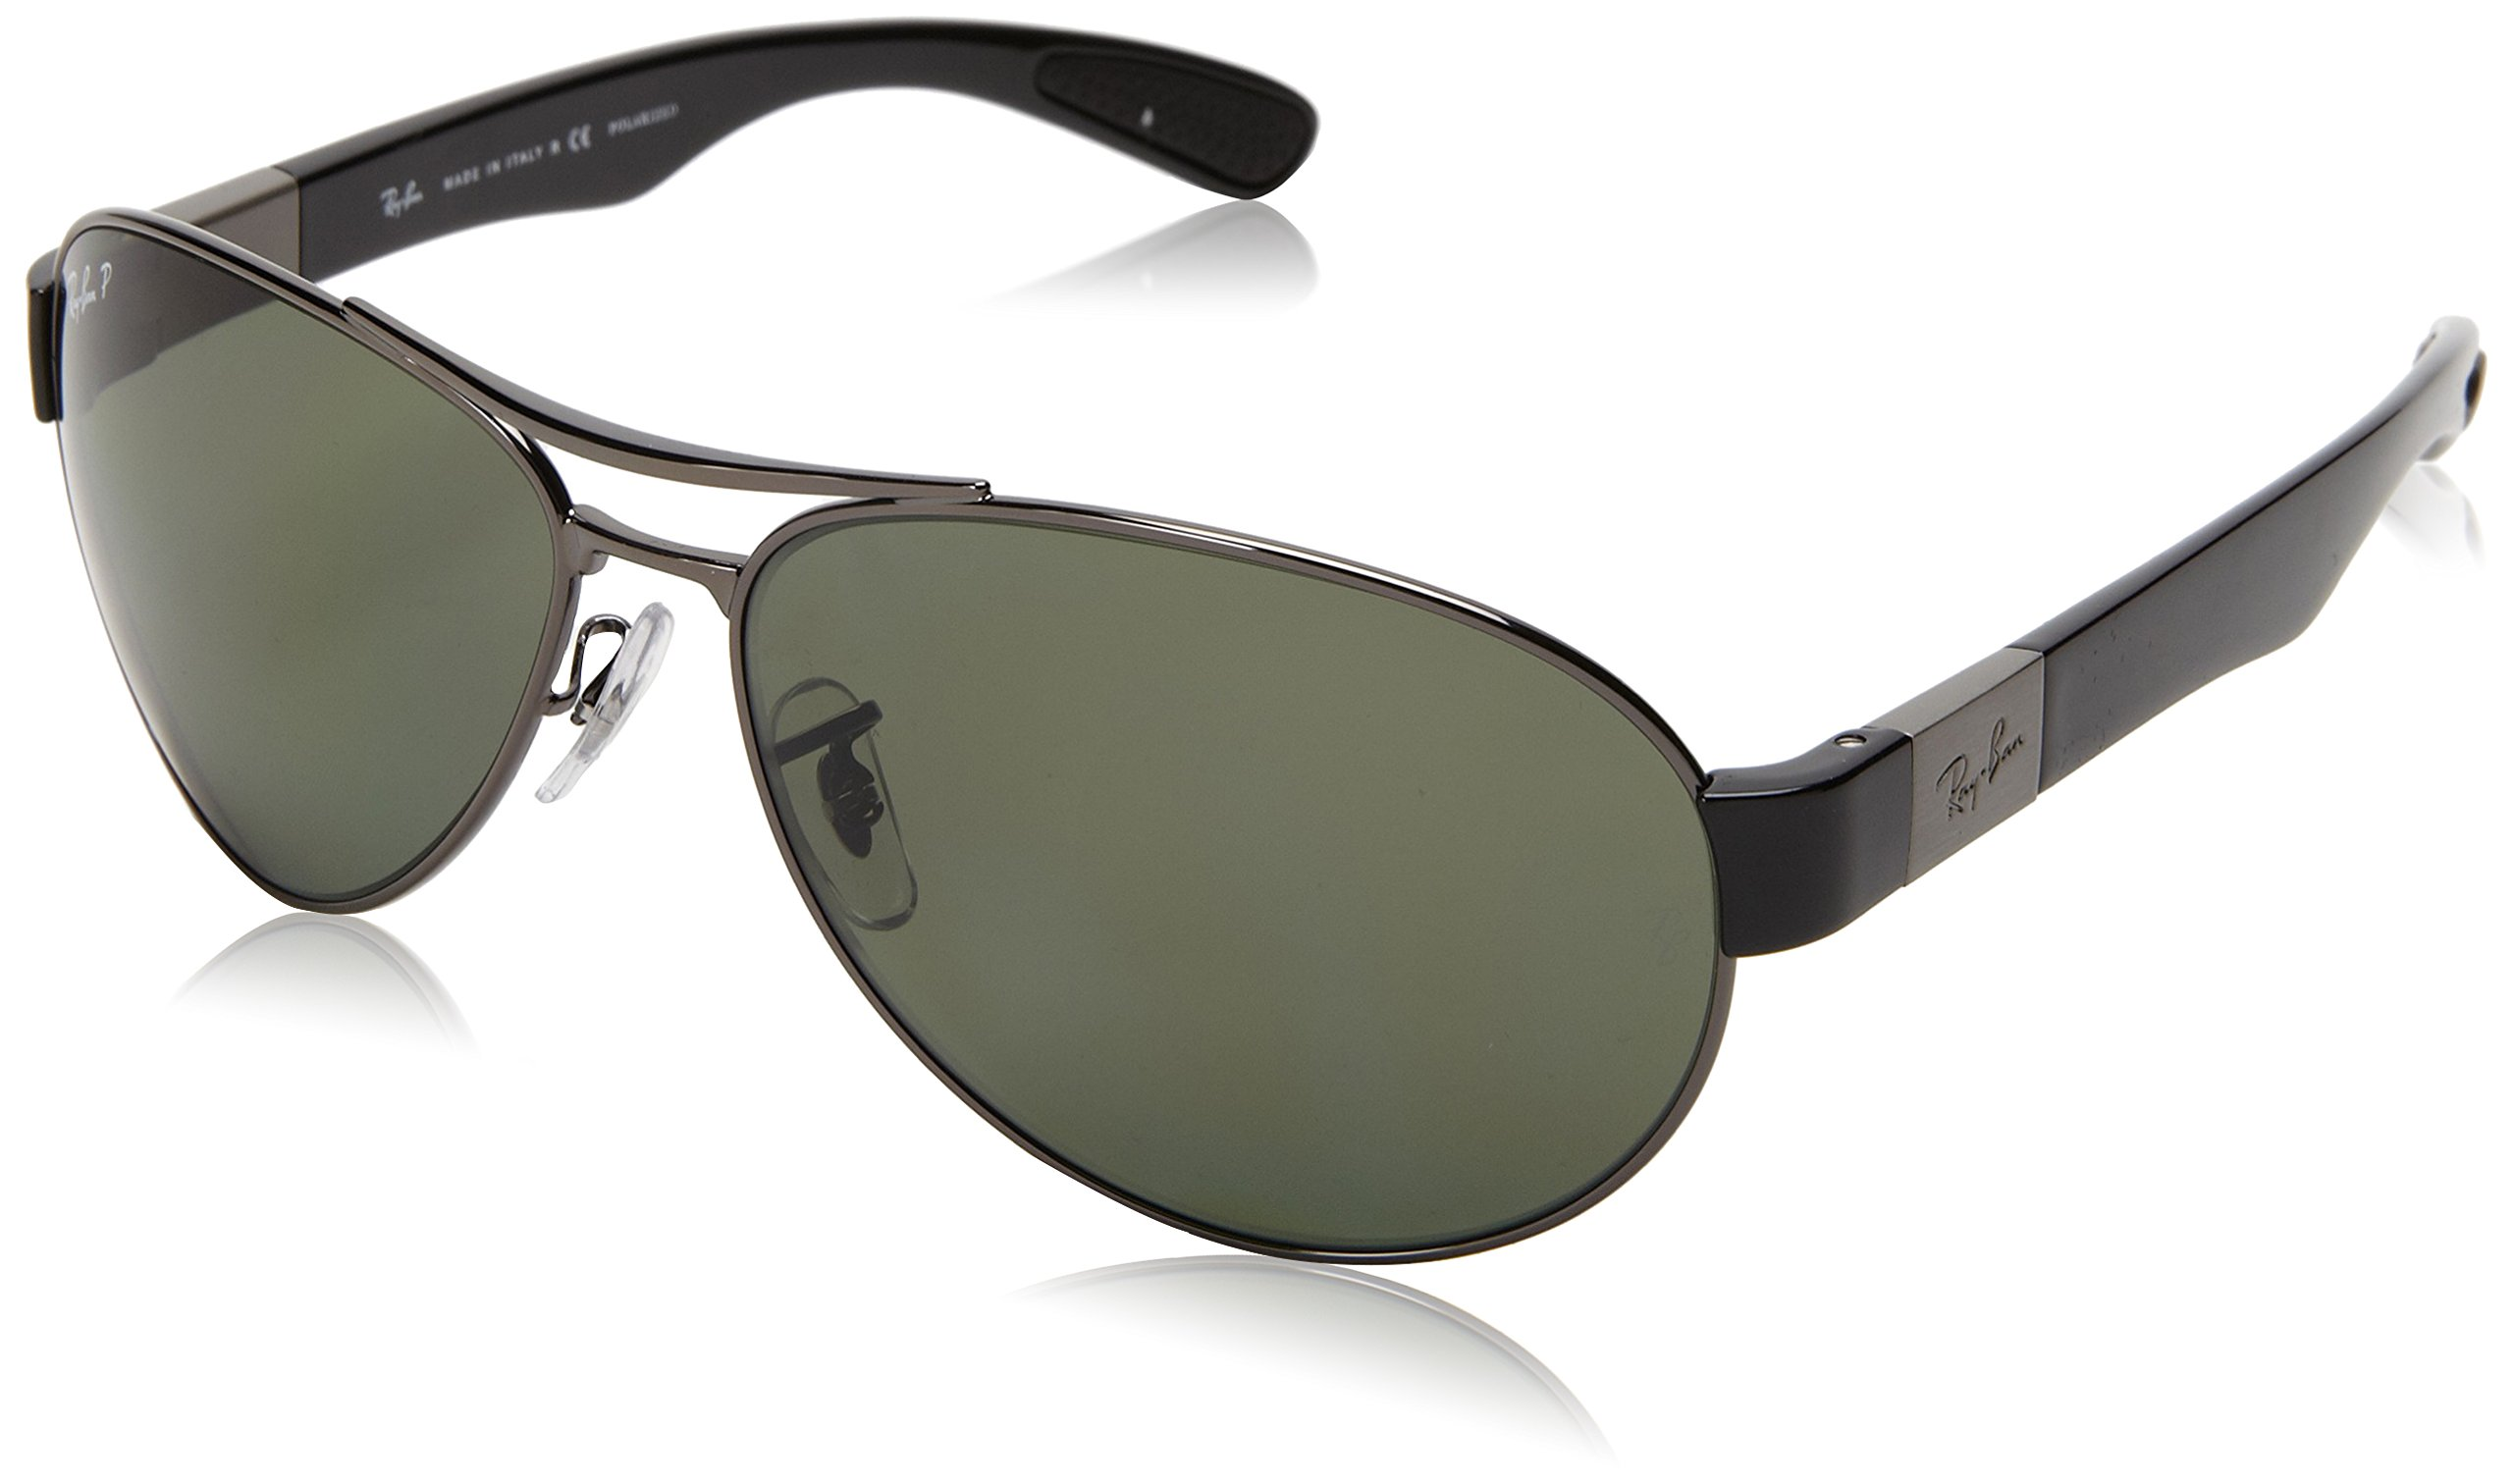 1737d9097e ... Ray-Ban 0RB3509 00682 Polarized Active Lifestyle Pilot Sunglasses ...